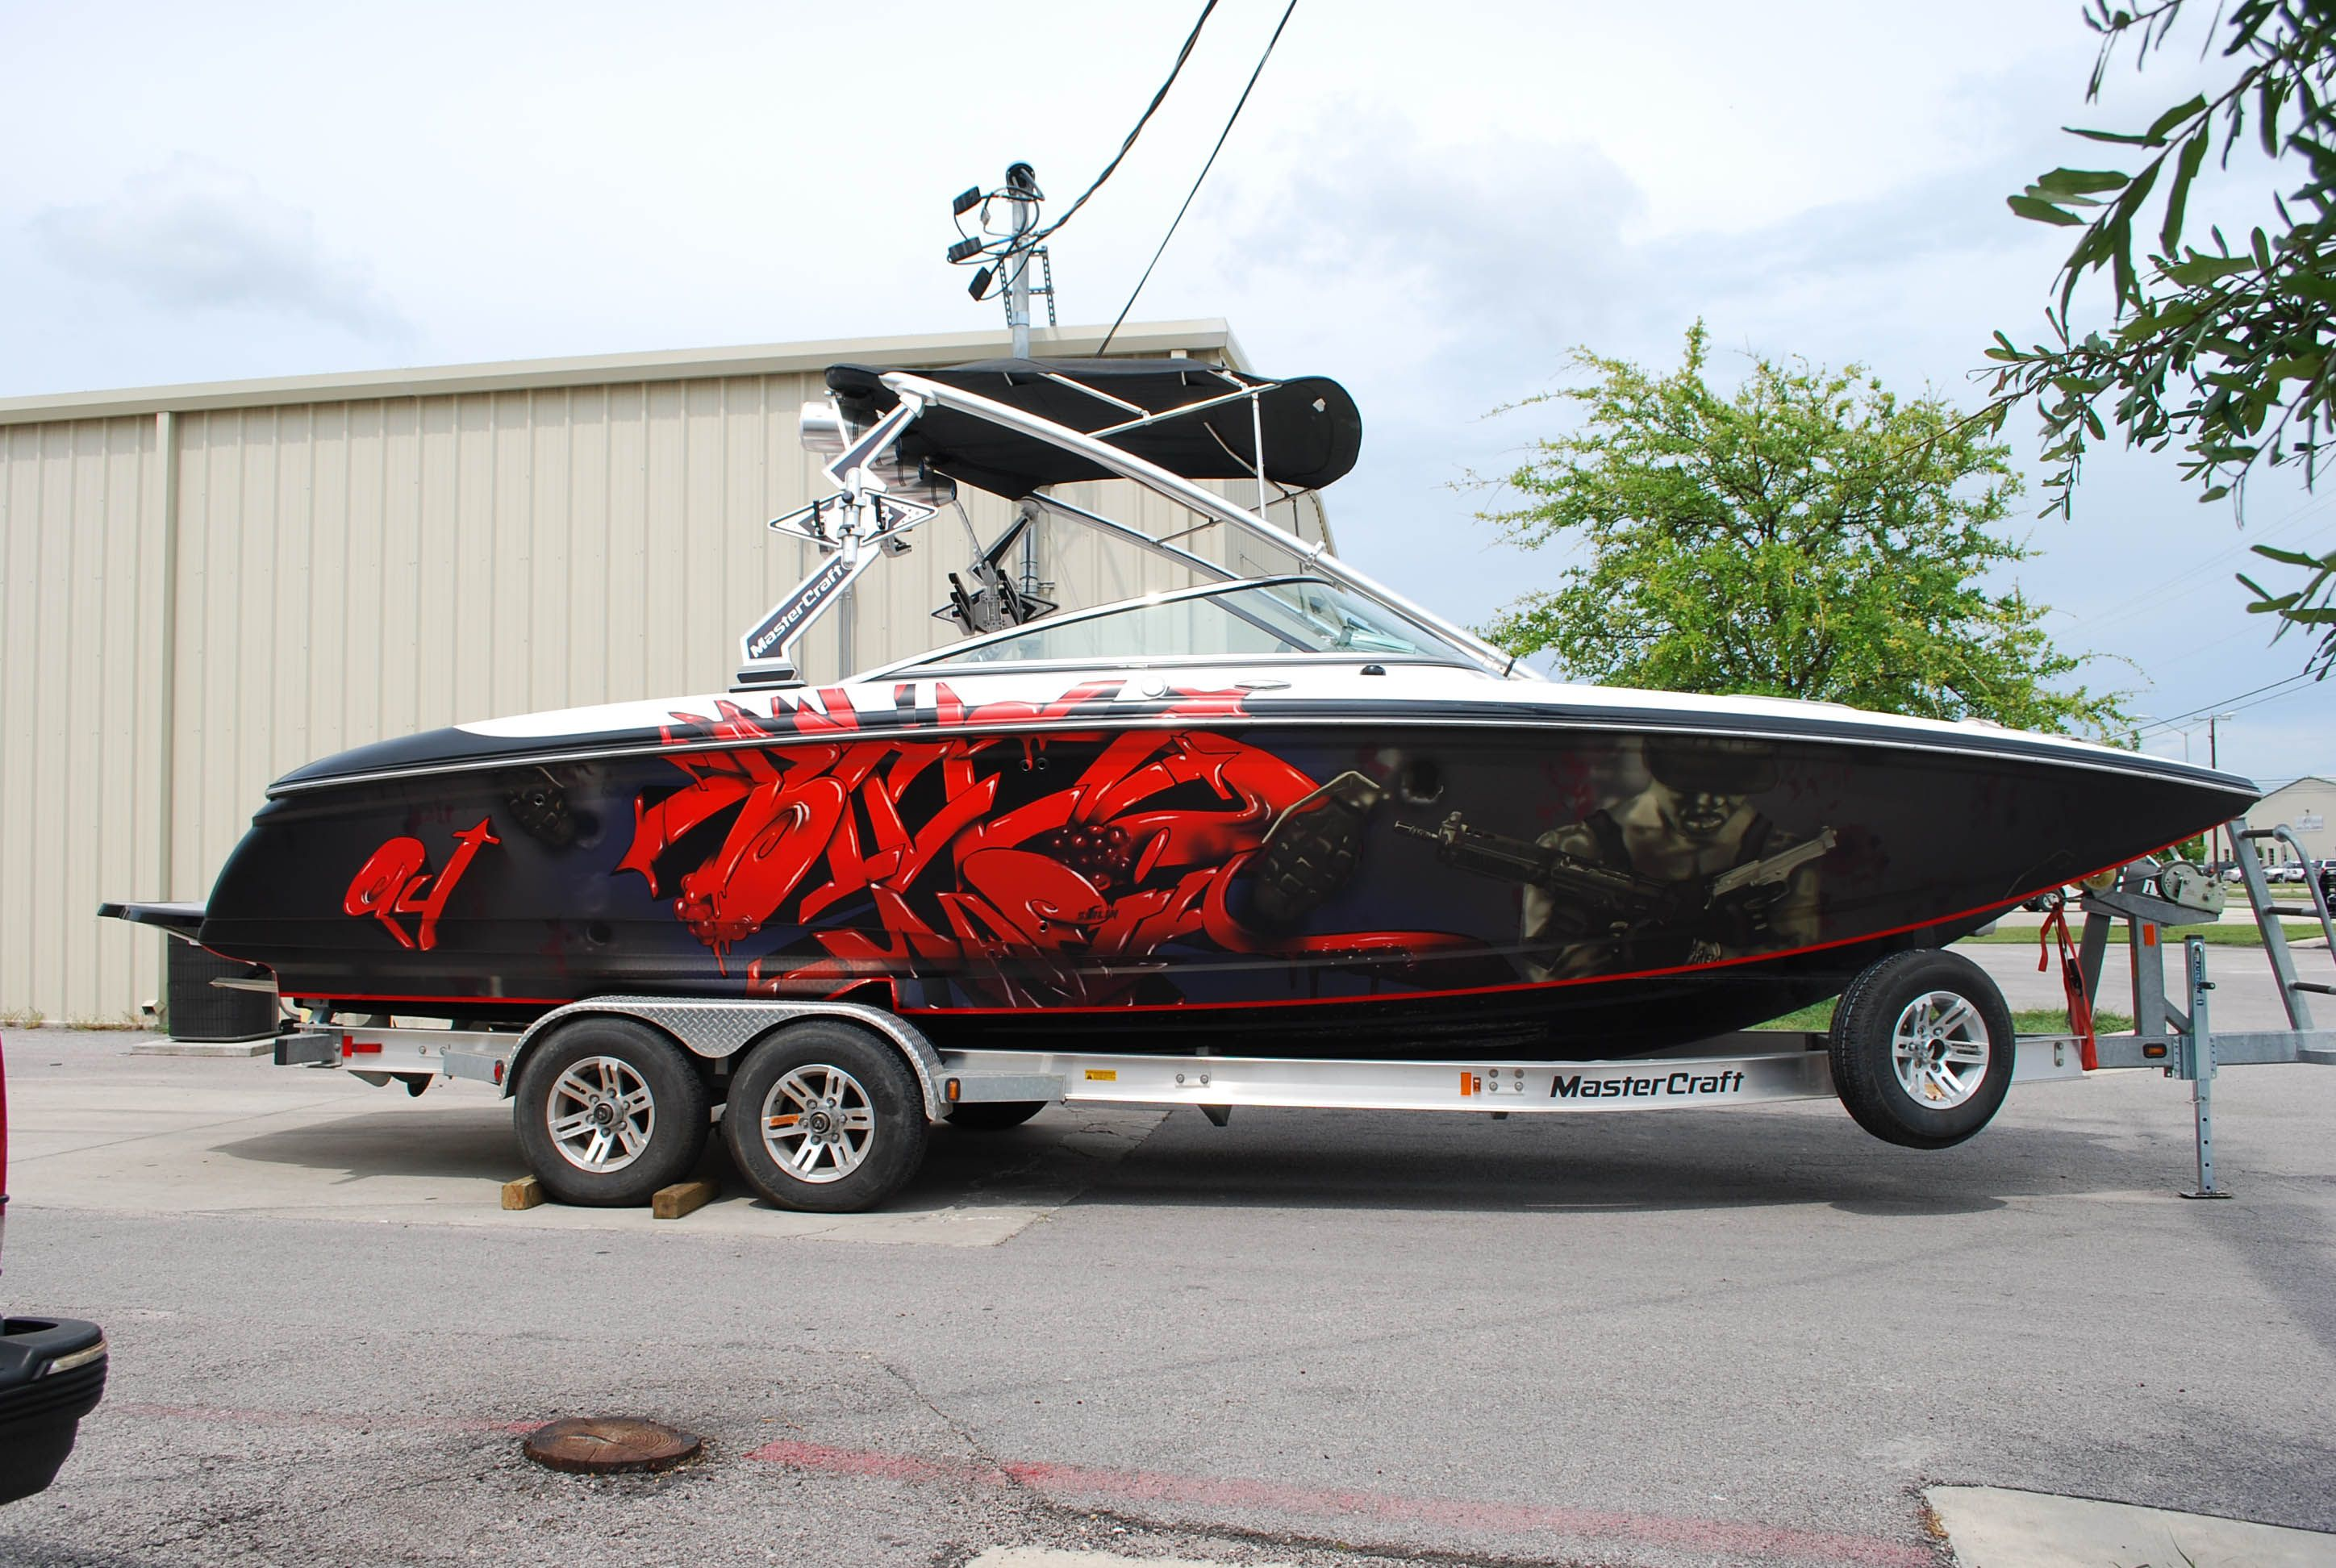 Boat Wrap Graphics Boats Pinterest Boat Wraps - Boat decalsboat graphics boat decals vinyl stickers for boats xtreme